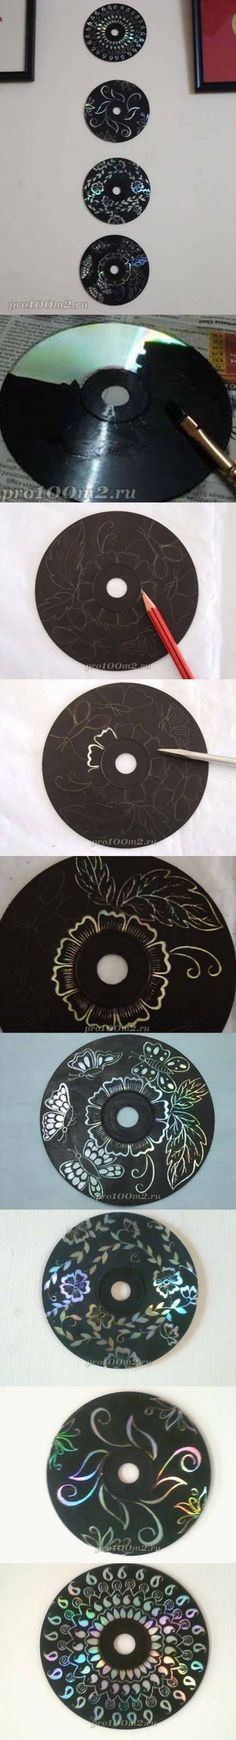 I'd love to try this with other colors. I have a ton of supremely scratched CDs that should be thrown away but can be repurposed now :D